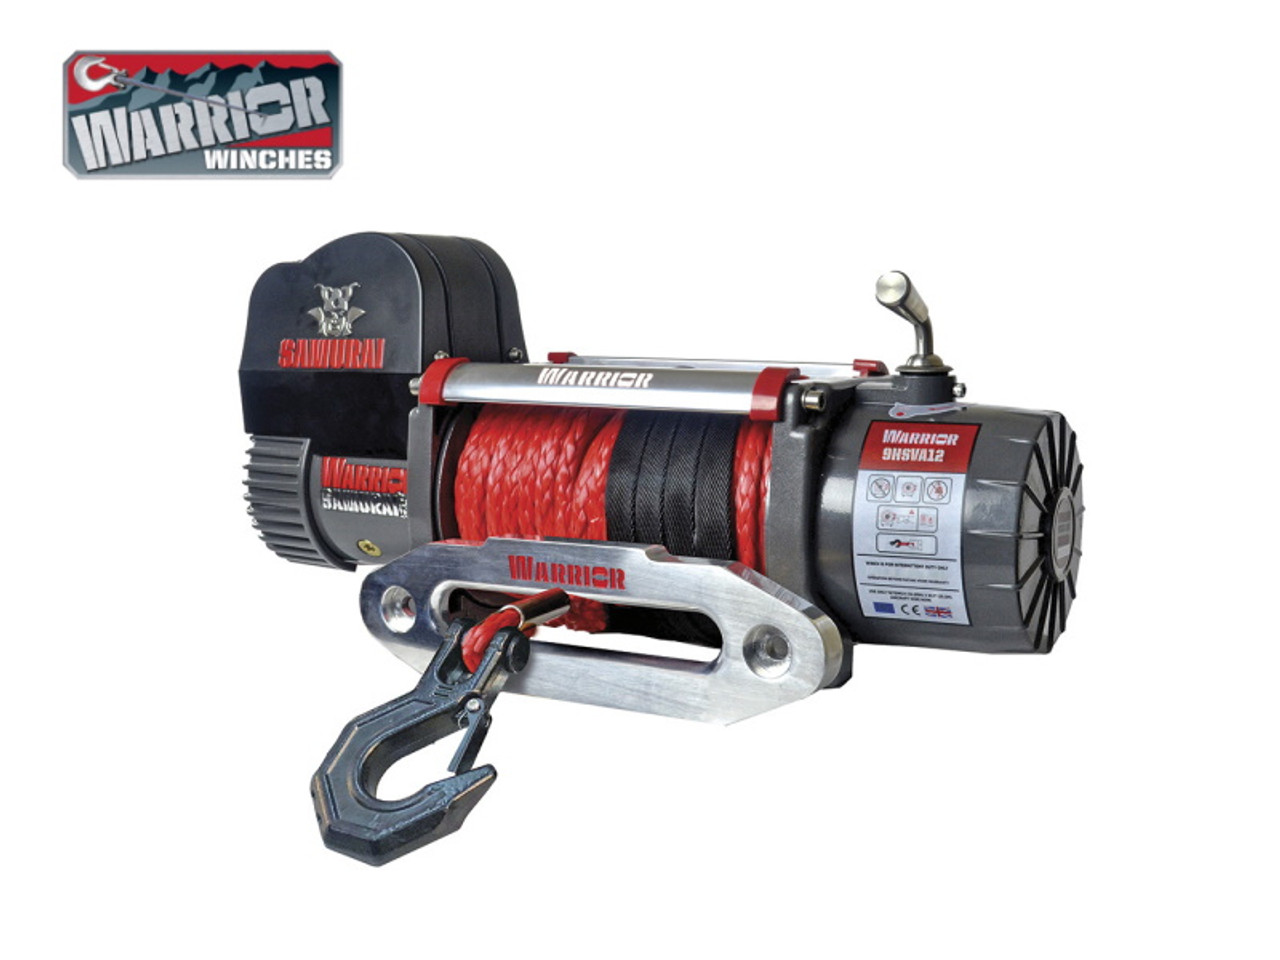 Warrior 9,500lb V2 HiSpeed Samurai 12v Electrical Winch With Synthetic Rope - 9HSVA12